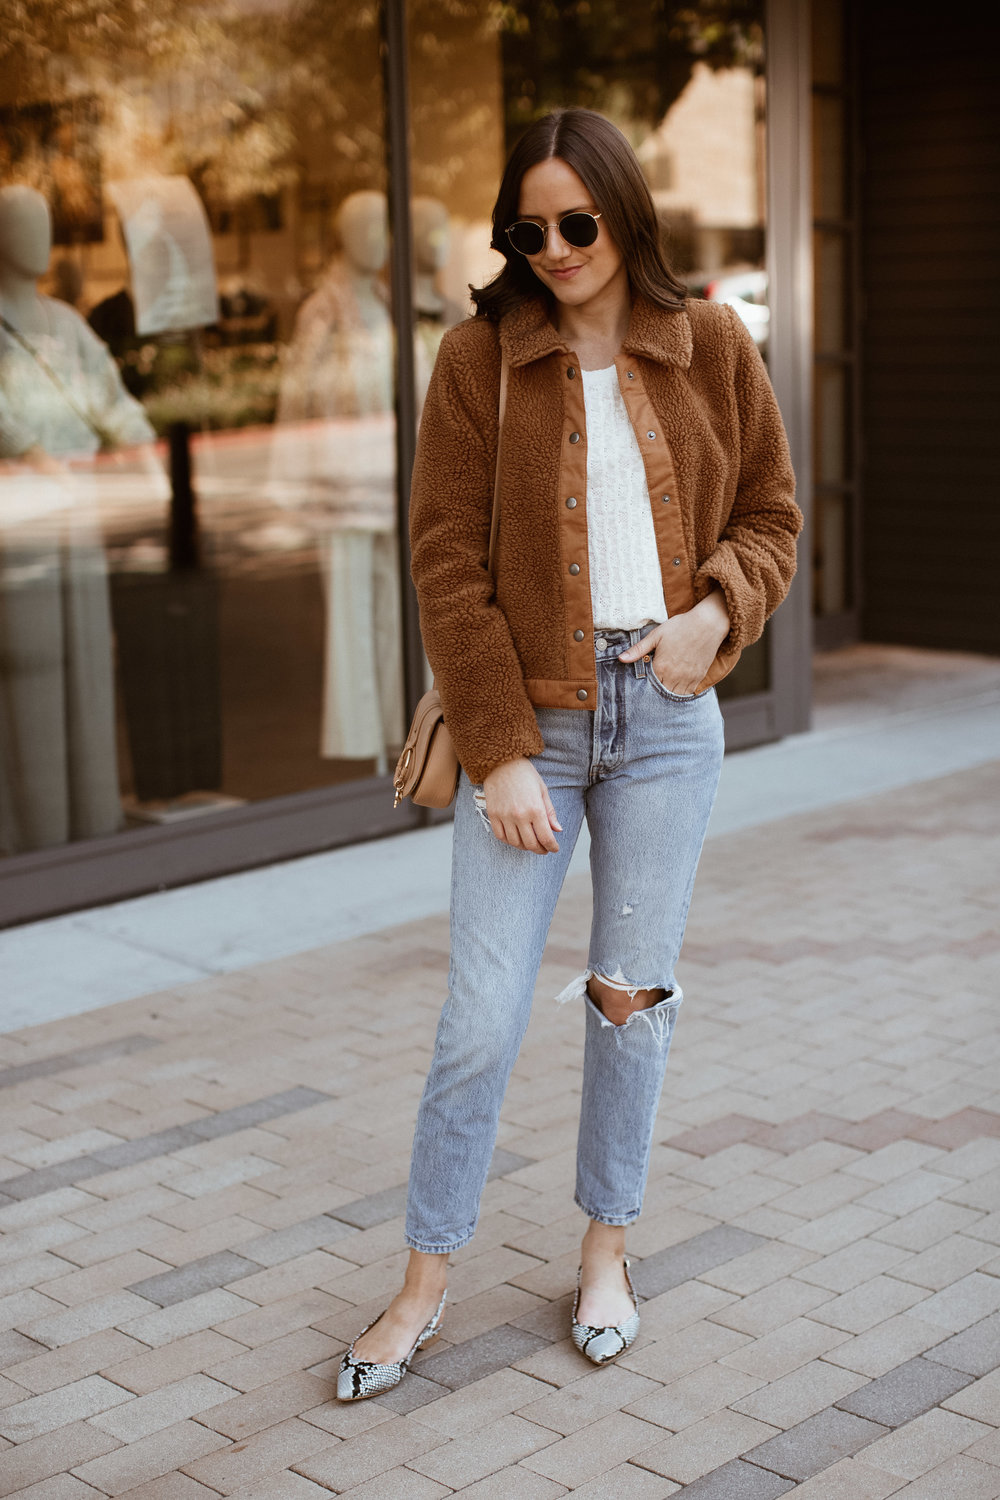 Shop the Look Below.  Anthropologie Sweater Tee  | Madewell Jacket  HERE  and  HERE  | Levi's Jeans  HERE ,  HERE  and HERE |  Shopbop Flats  |  See By Chloe Bag  |  Ray-Ban Sunglasses